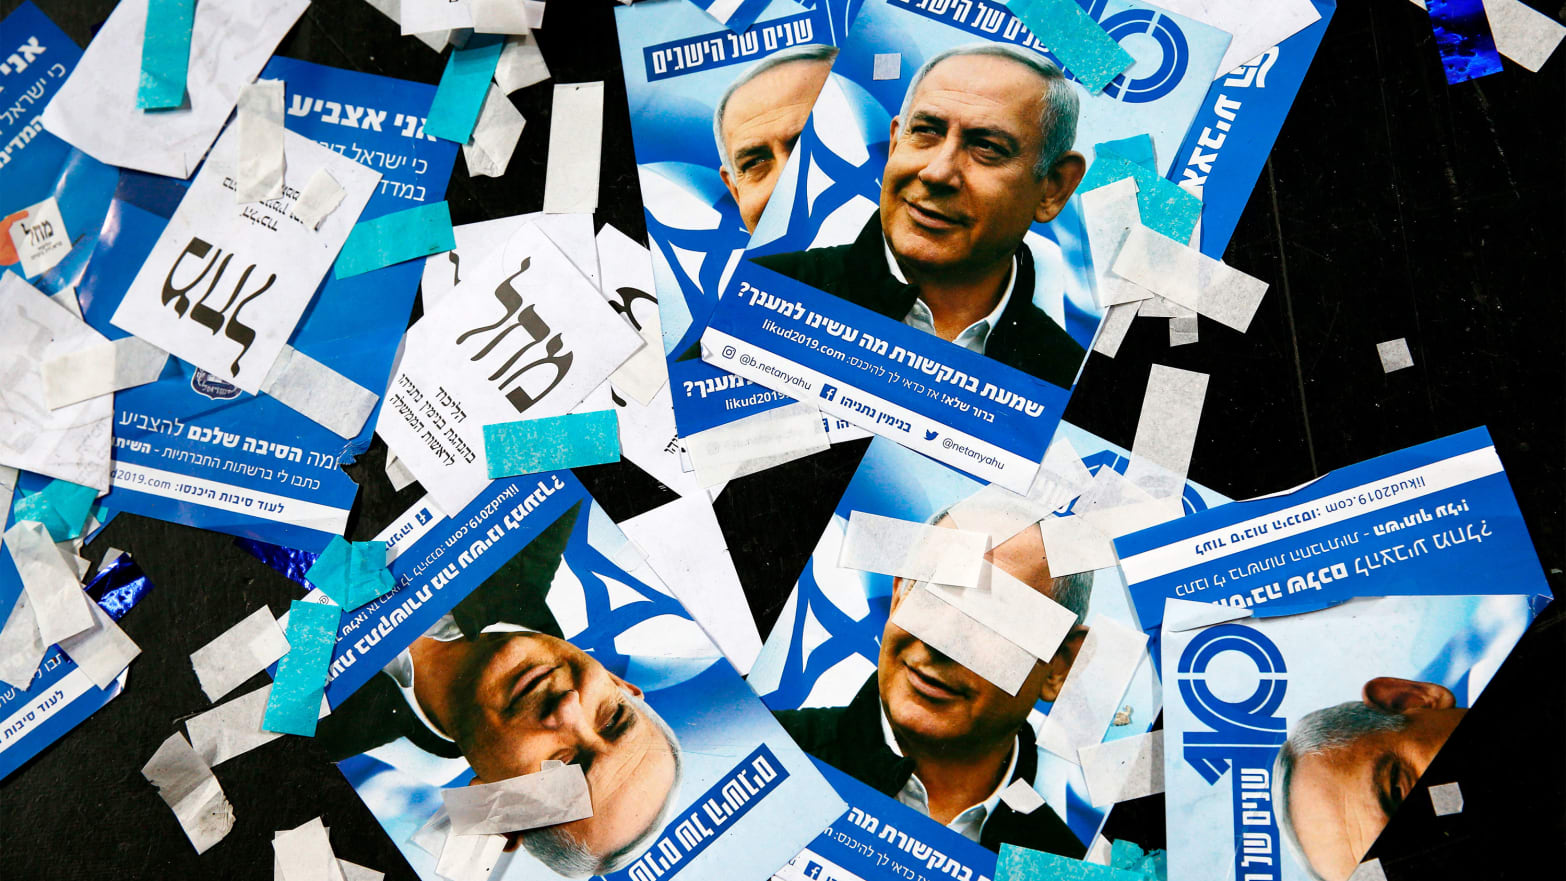 Benjamin Netanyahu Lost Israel's Elections. His Enemies Won. But Who Can Govern Israel?